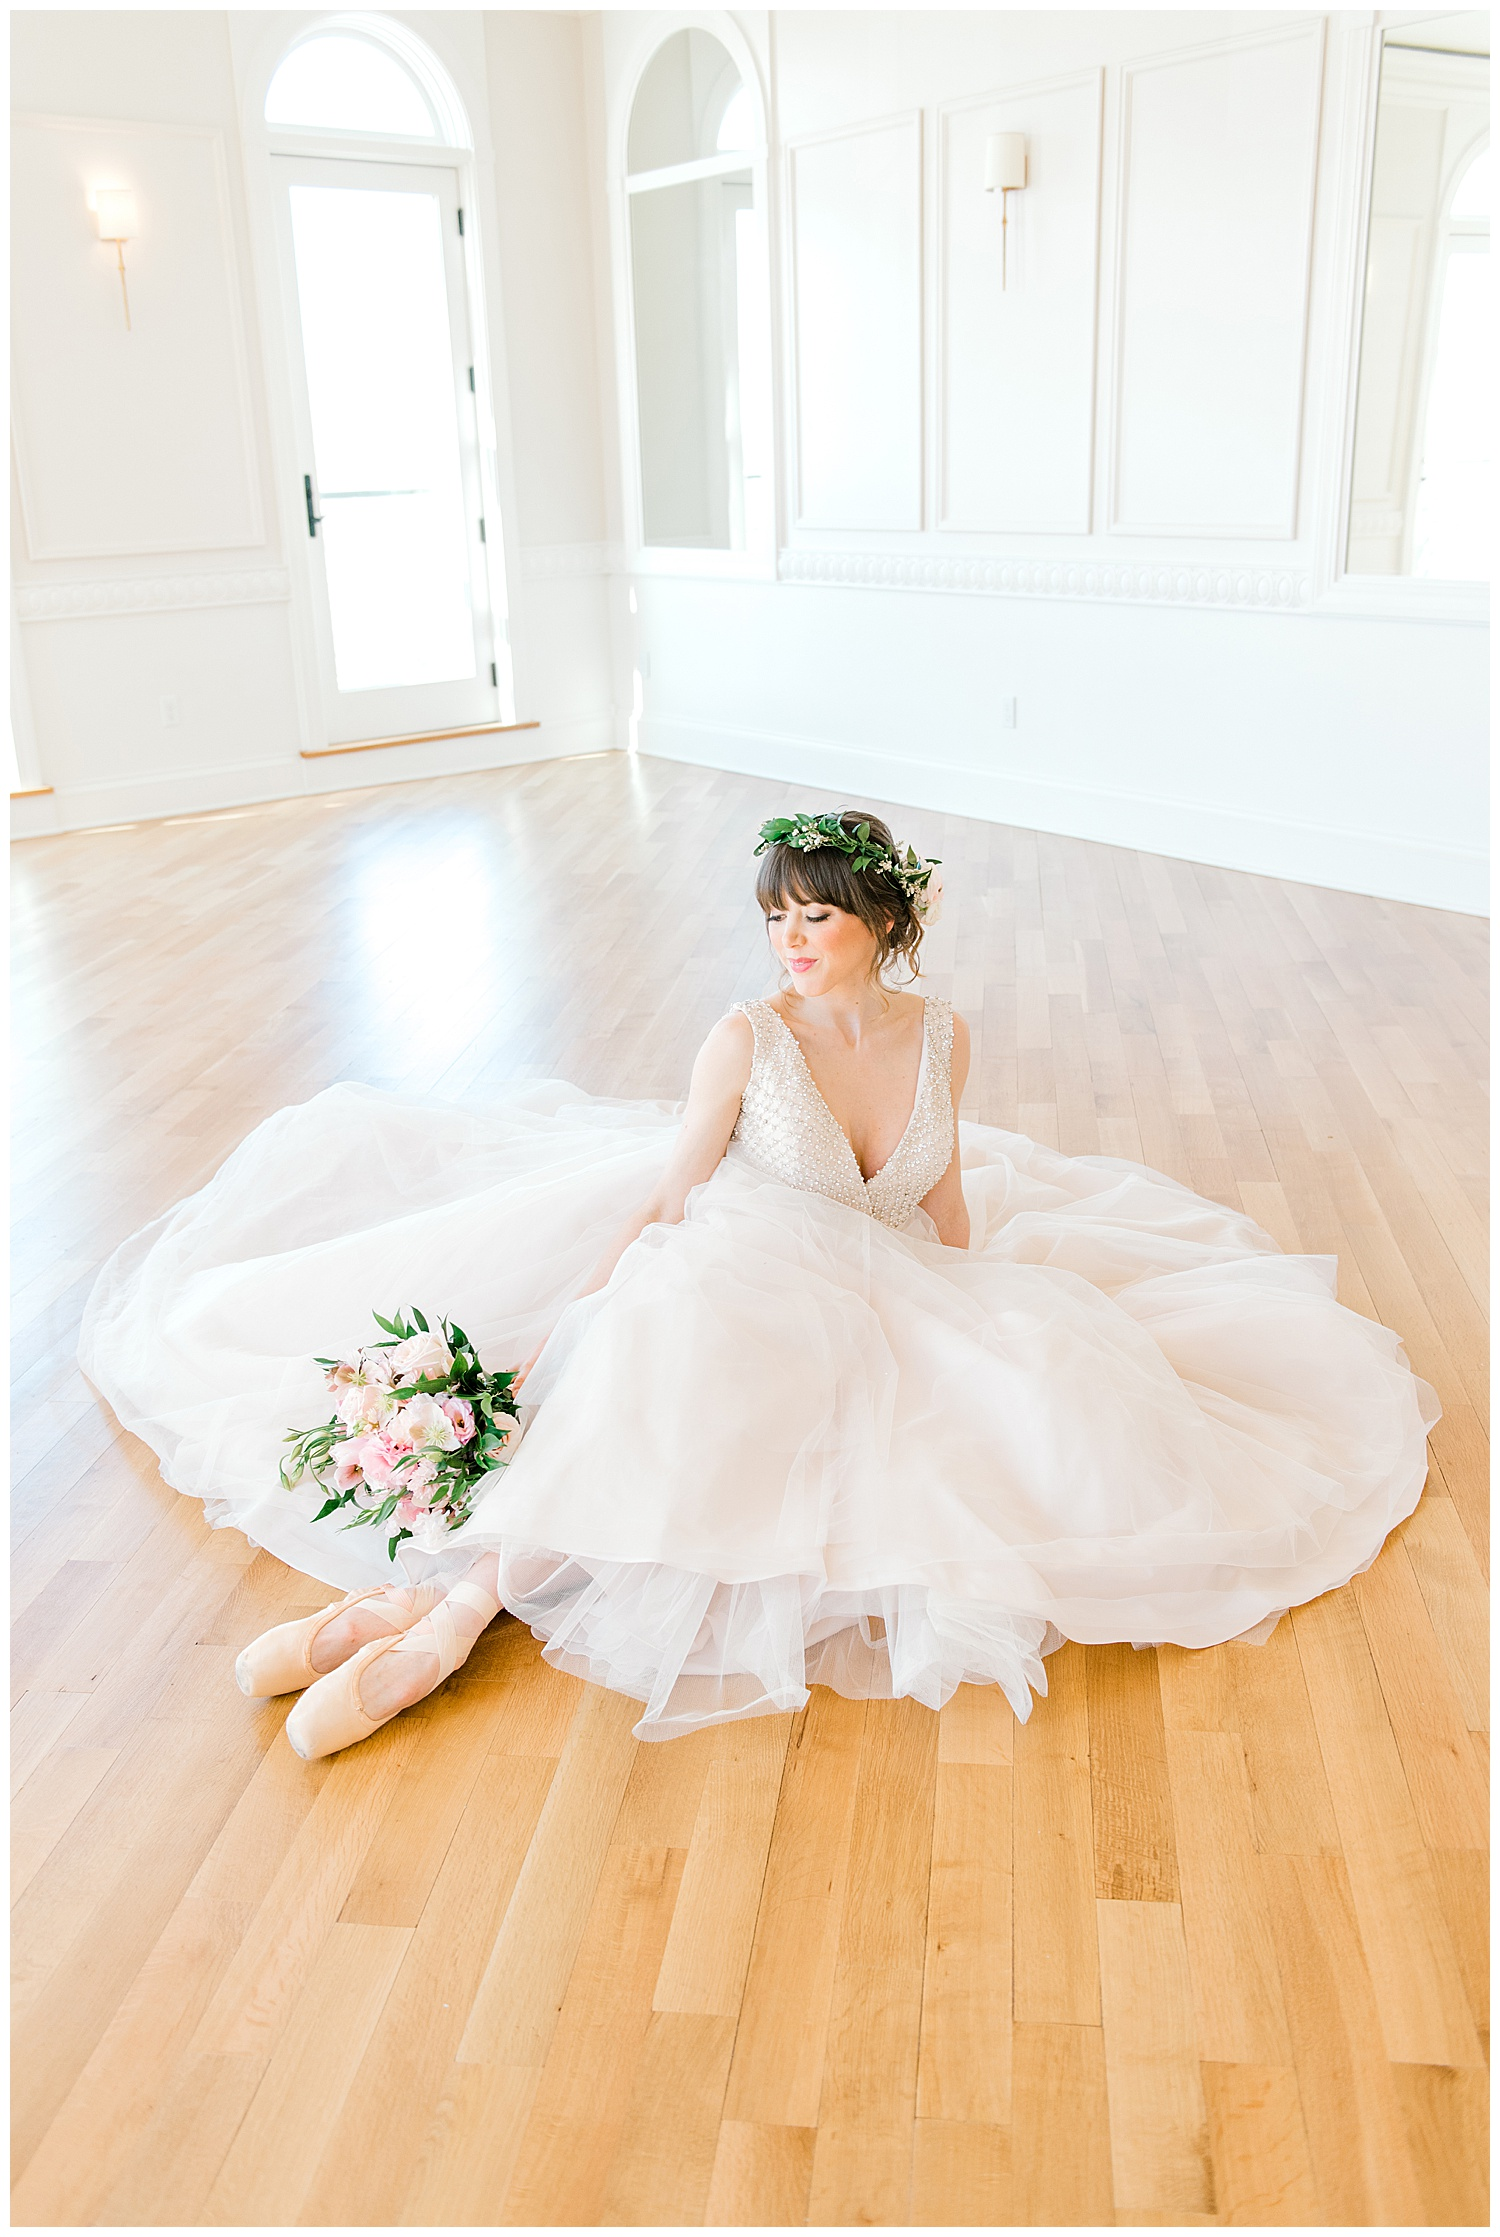 blush-ballerina-wedding-photography-newport-rhode-island-36.jpg